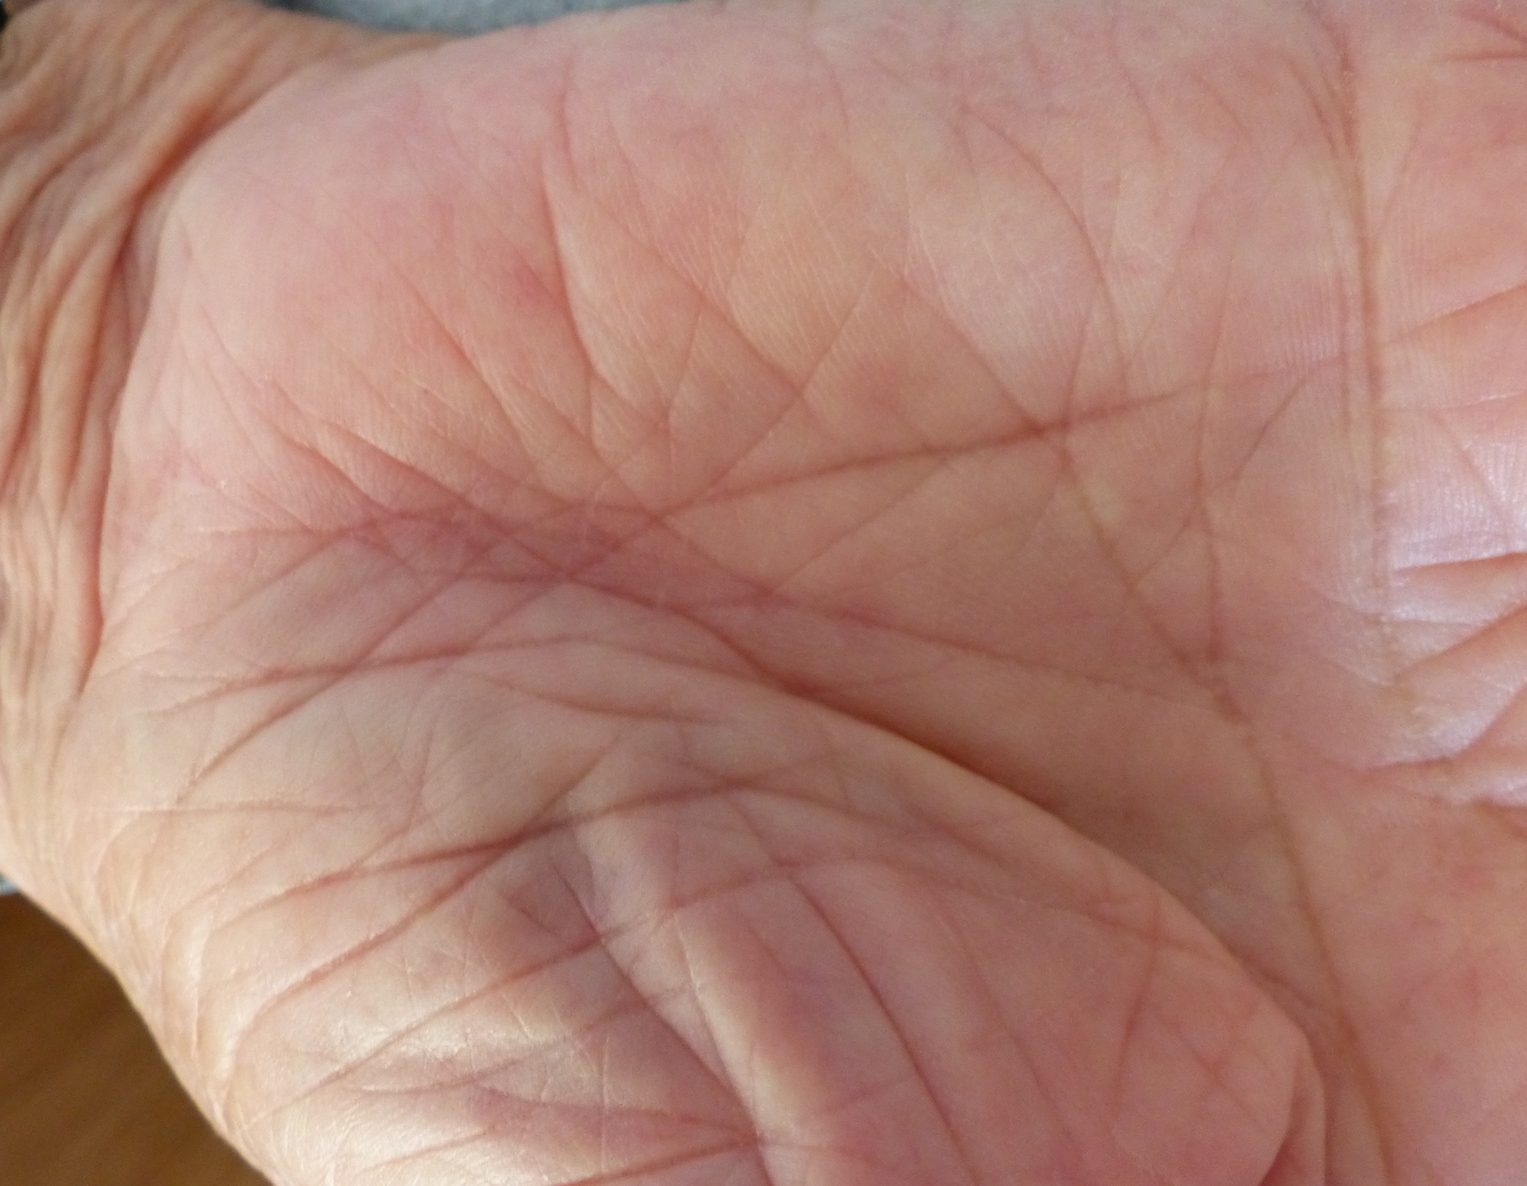 carpal tunnel surgery wound healing